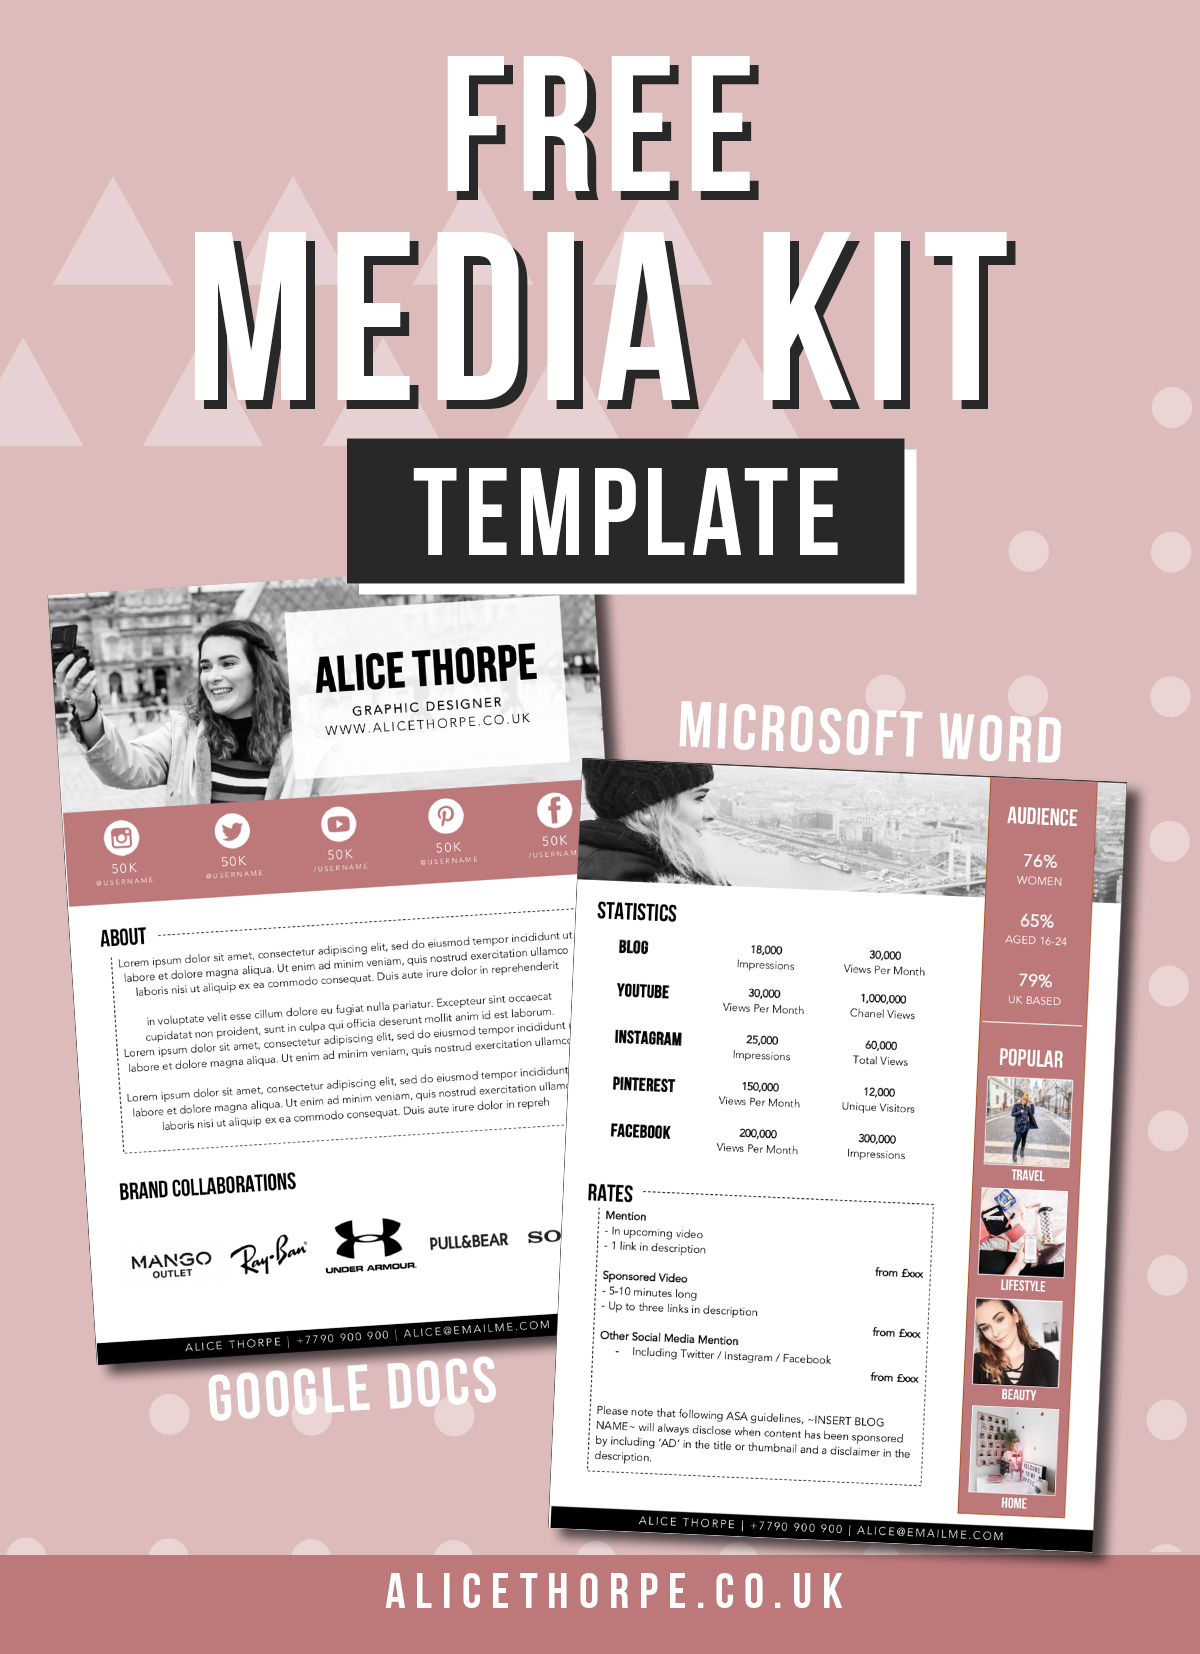 Free media kit download for Google Docs and Microsoft Word